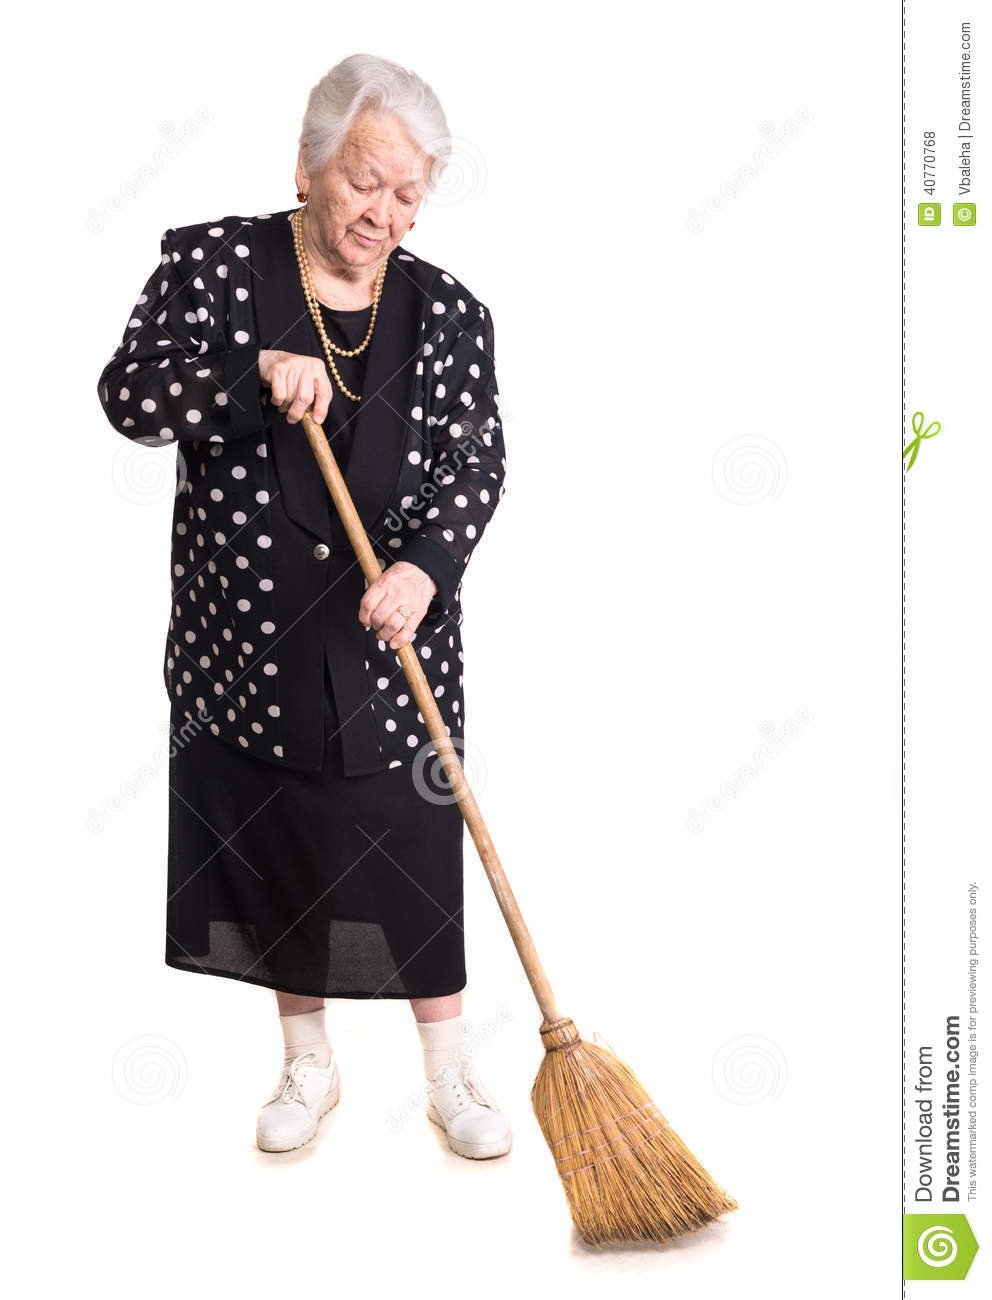 Full Length Of Elderly Woman Cleaning House With Broom